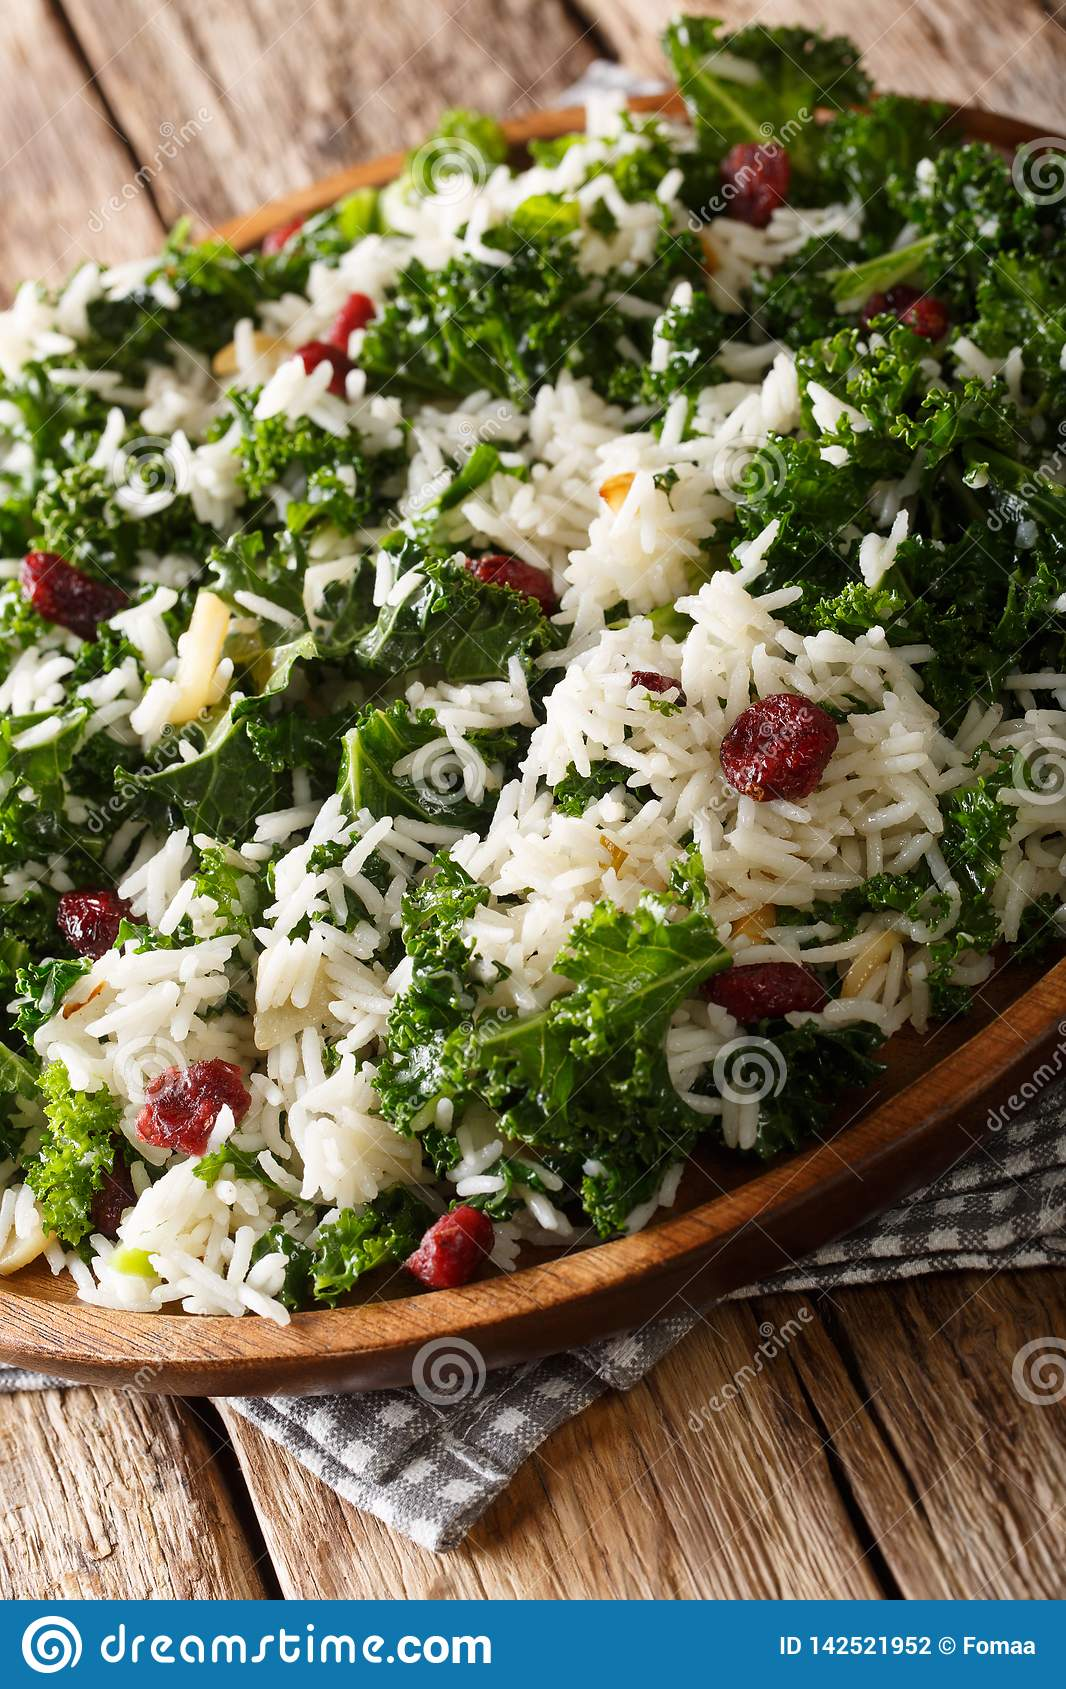 Healthy vitamin Kale with rice and cranberries close-up on a plate. vertical